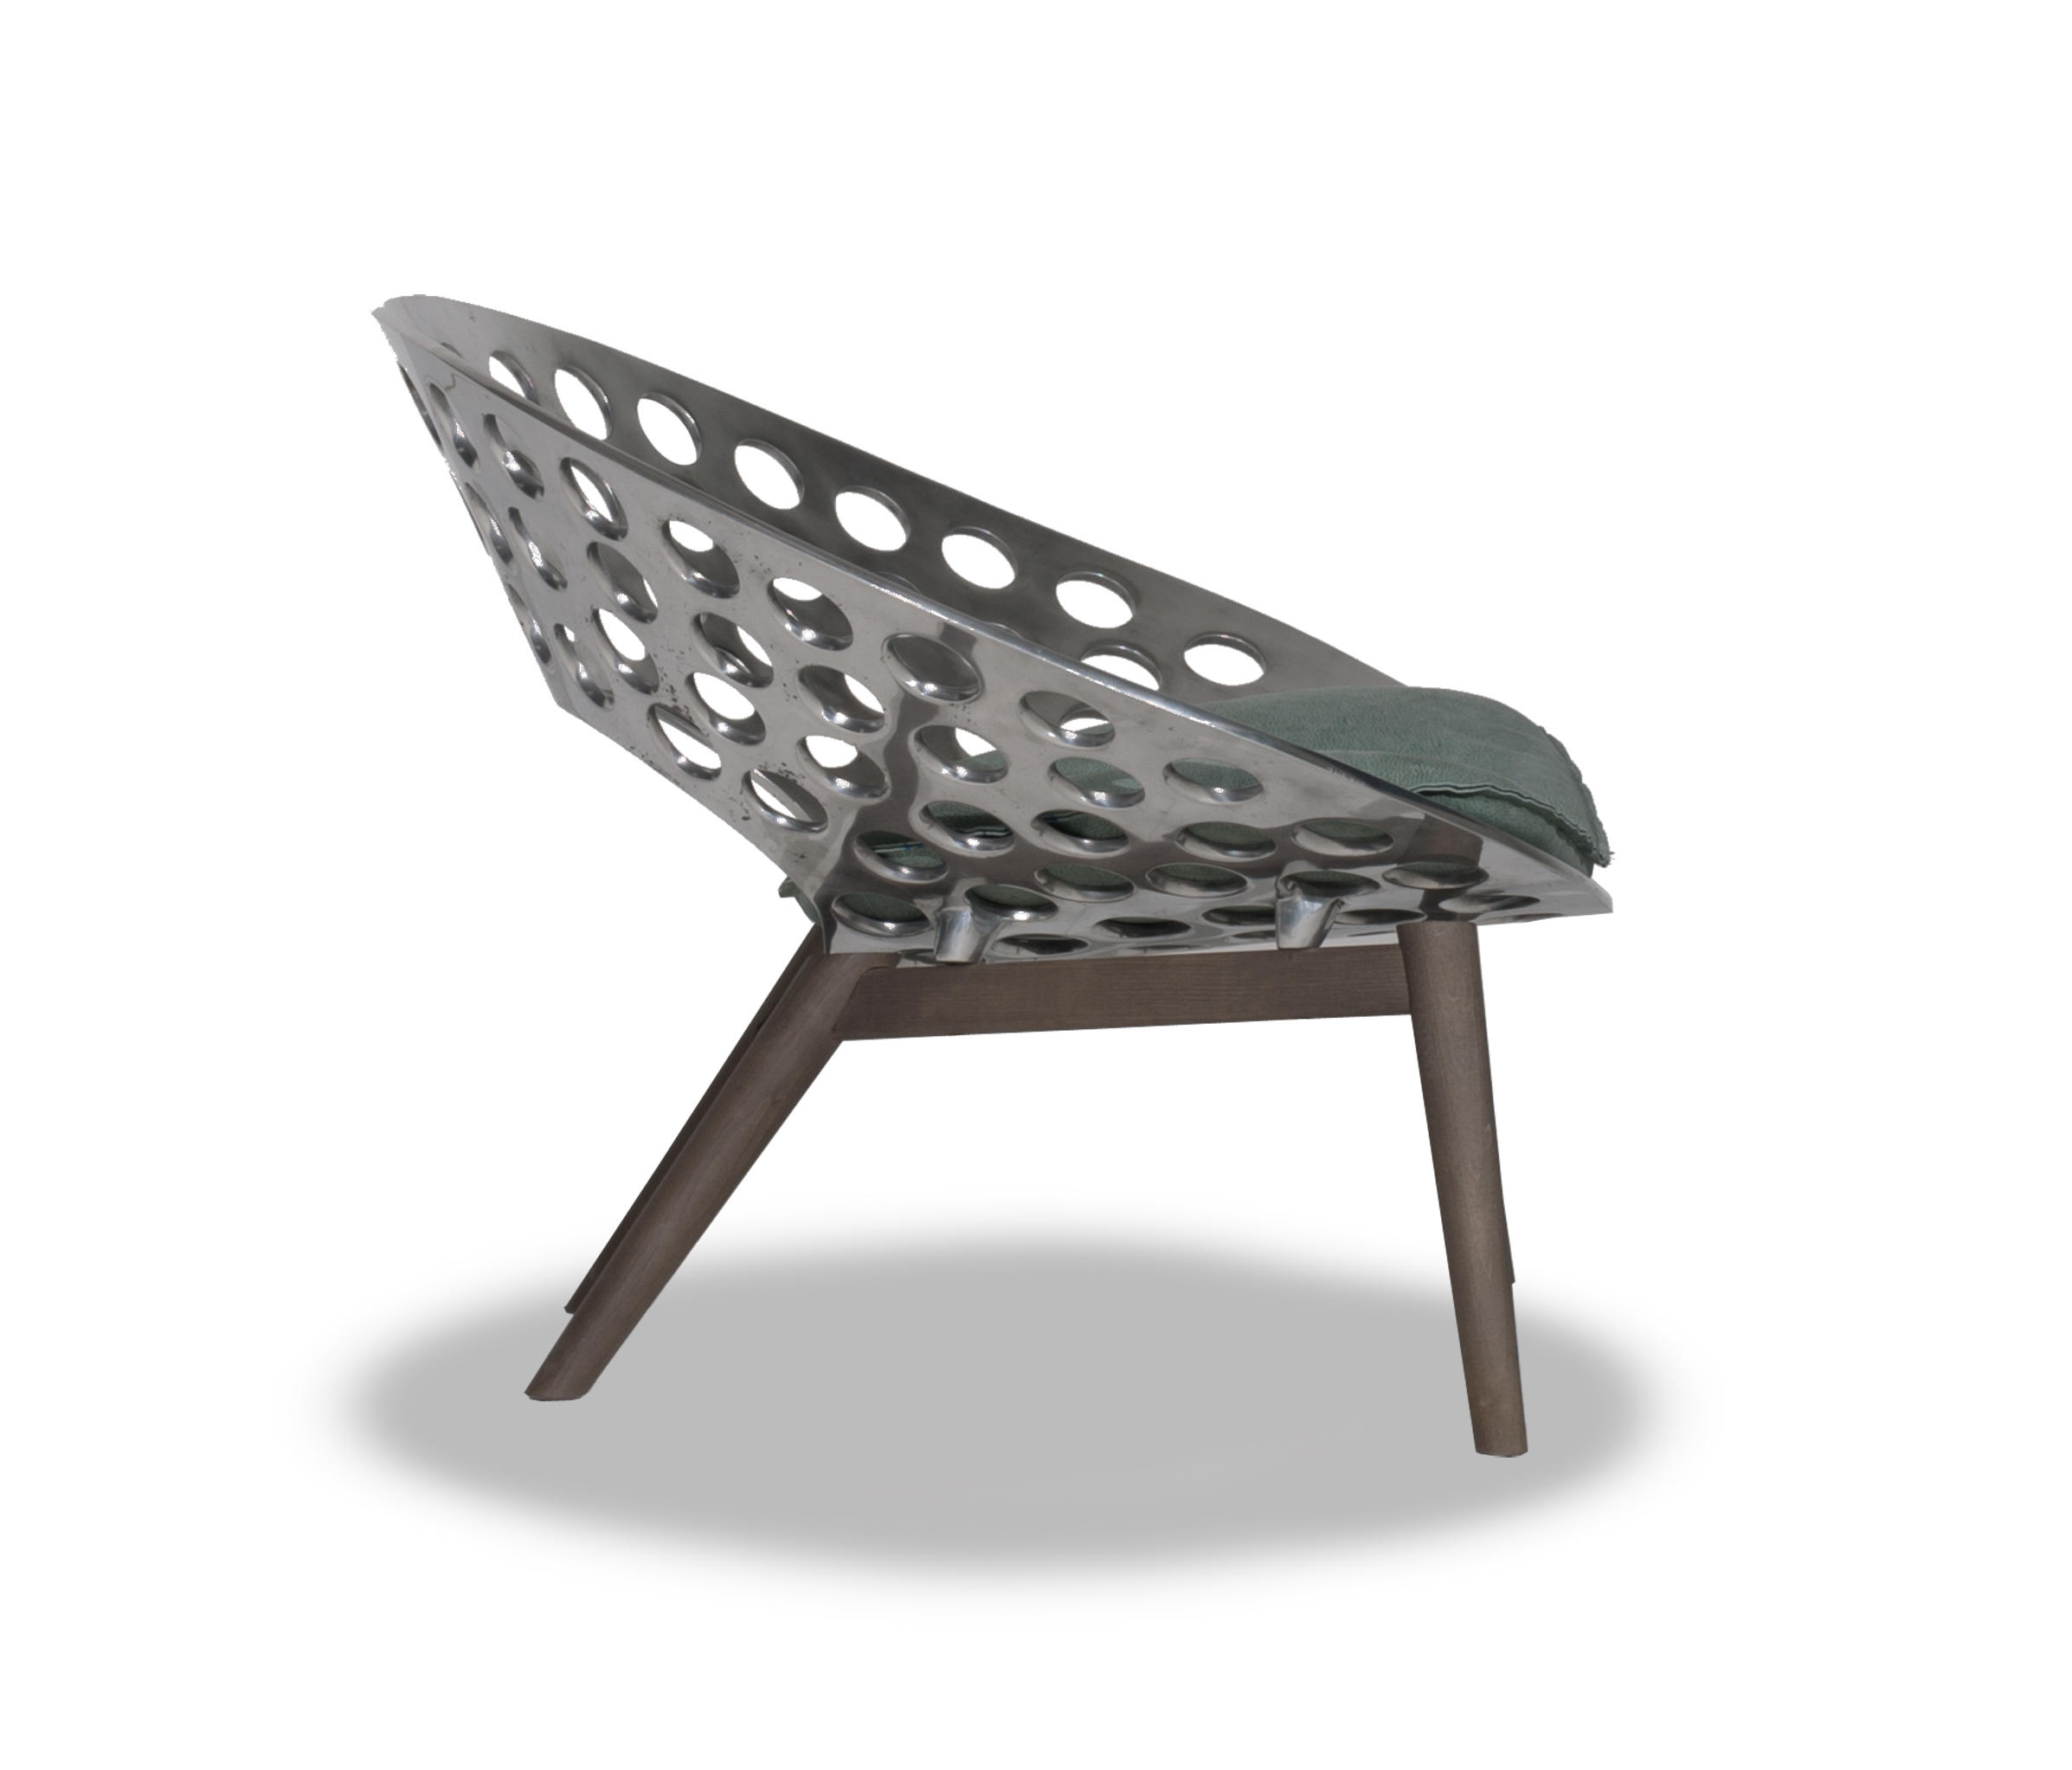 ROMA Lounge chairs from Baxter